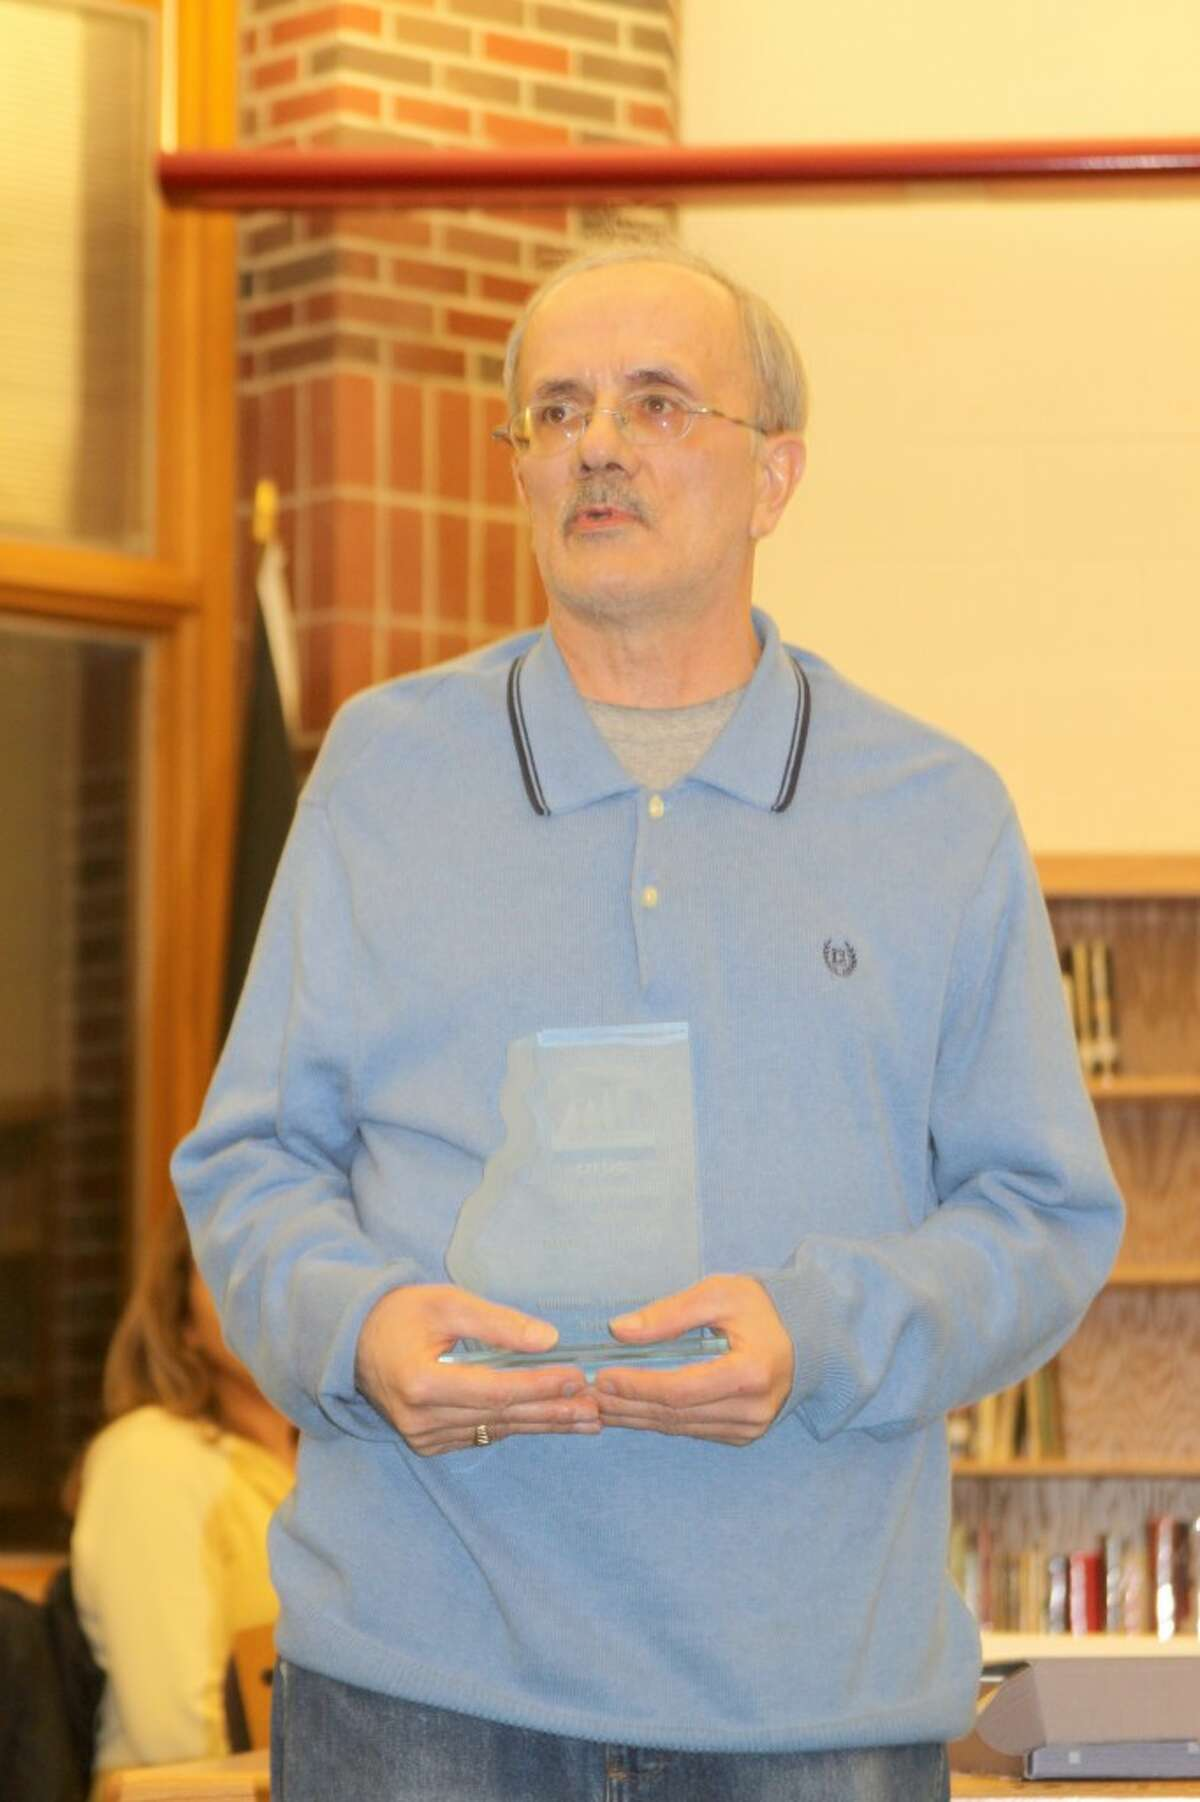 Onekama Consolidated Schools board member and school volunteer Dennis Zupin is shown when he recevied the 2010 Manistee News Advocate Citizen of the year award. Zupin recently underwent a liver transplant and the school is rallying with some fundraisers to help him with expenses as he begins the recovery process. (File photo)